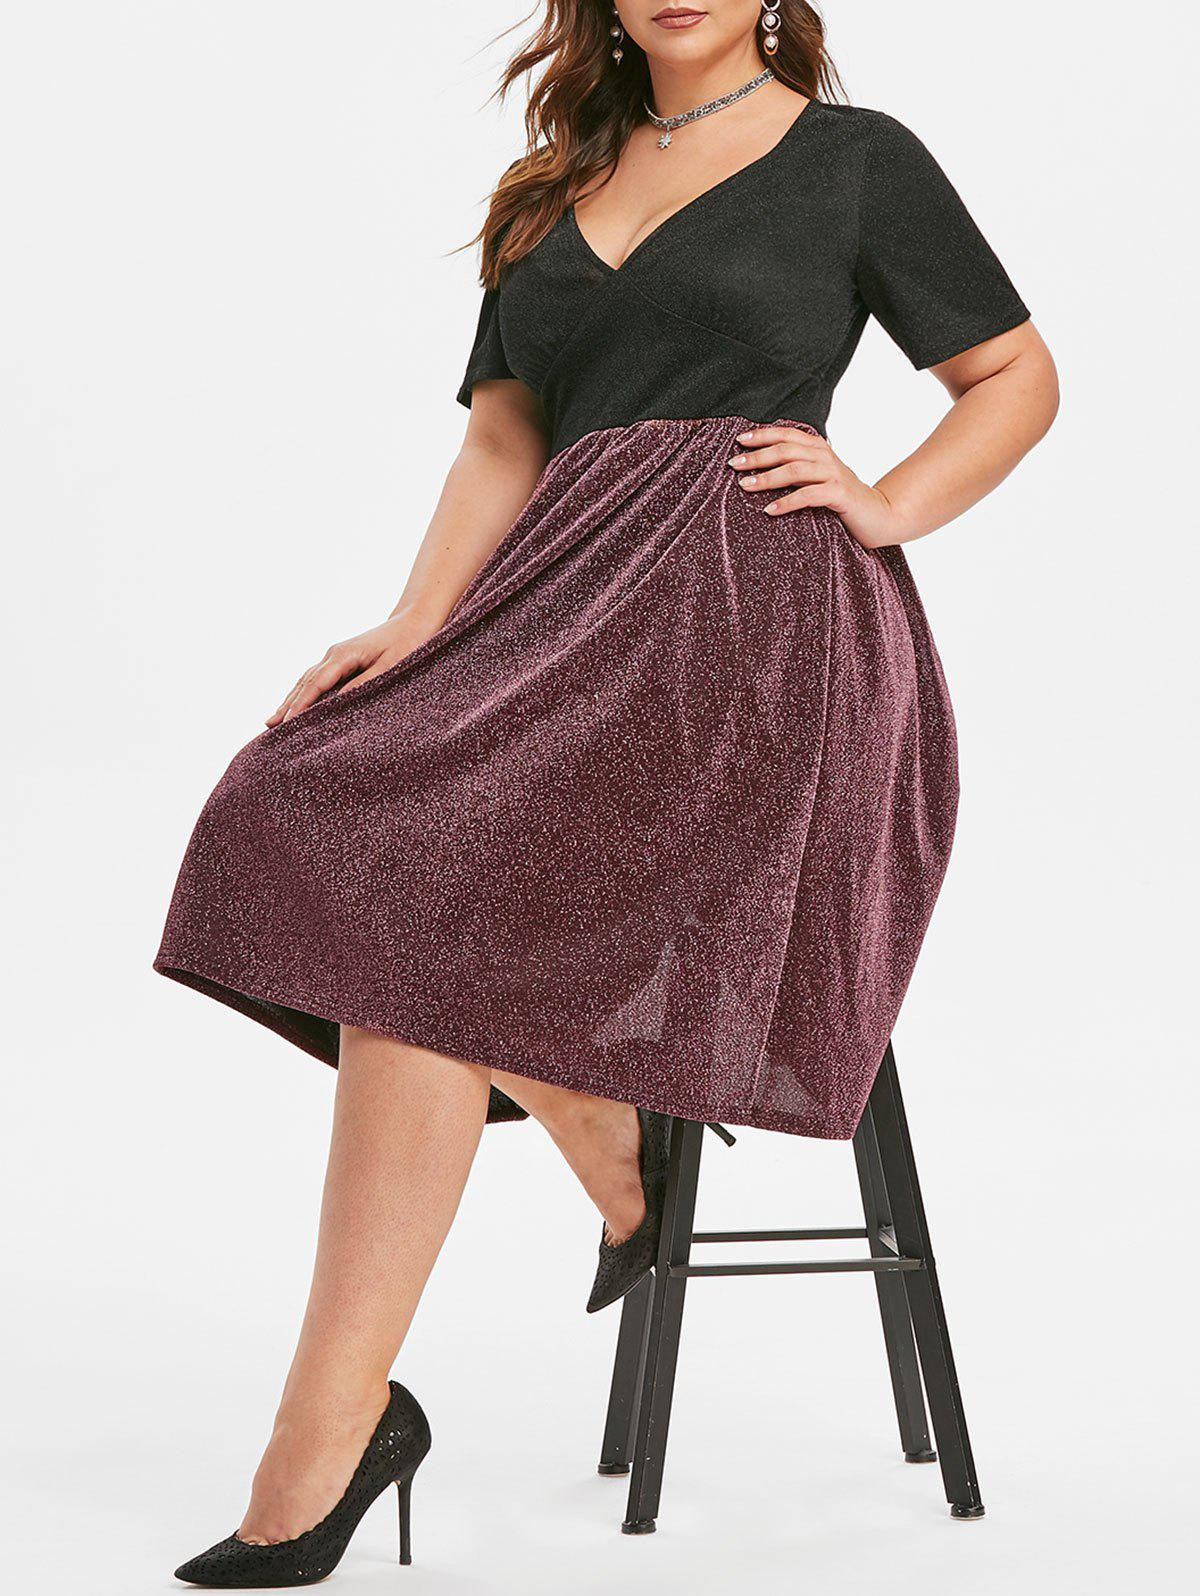 Plus Size Two Tone Sparkle Party Dress - RED WINE 3X